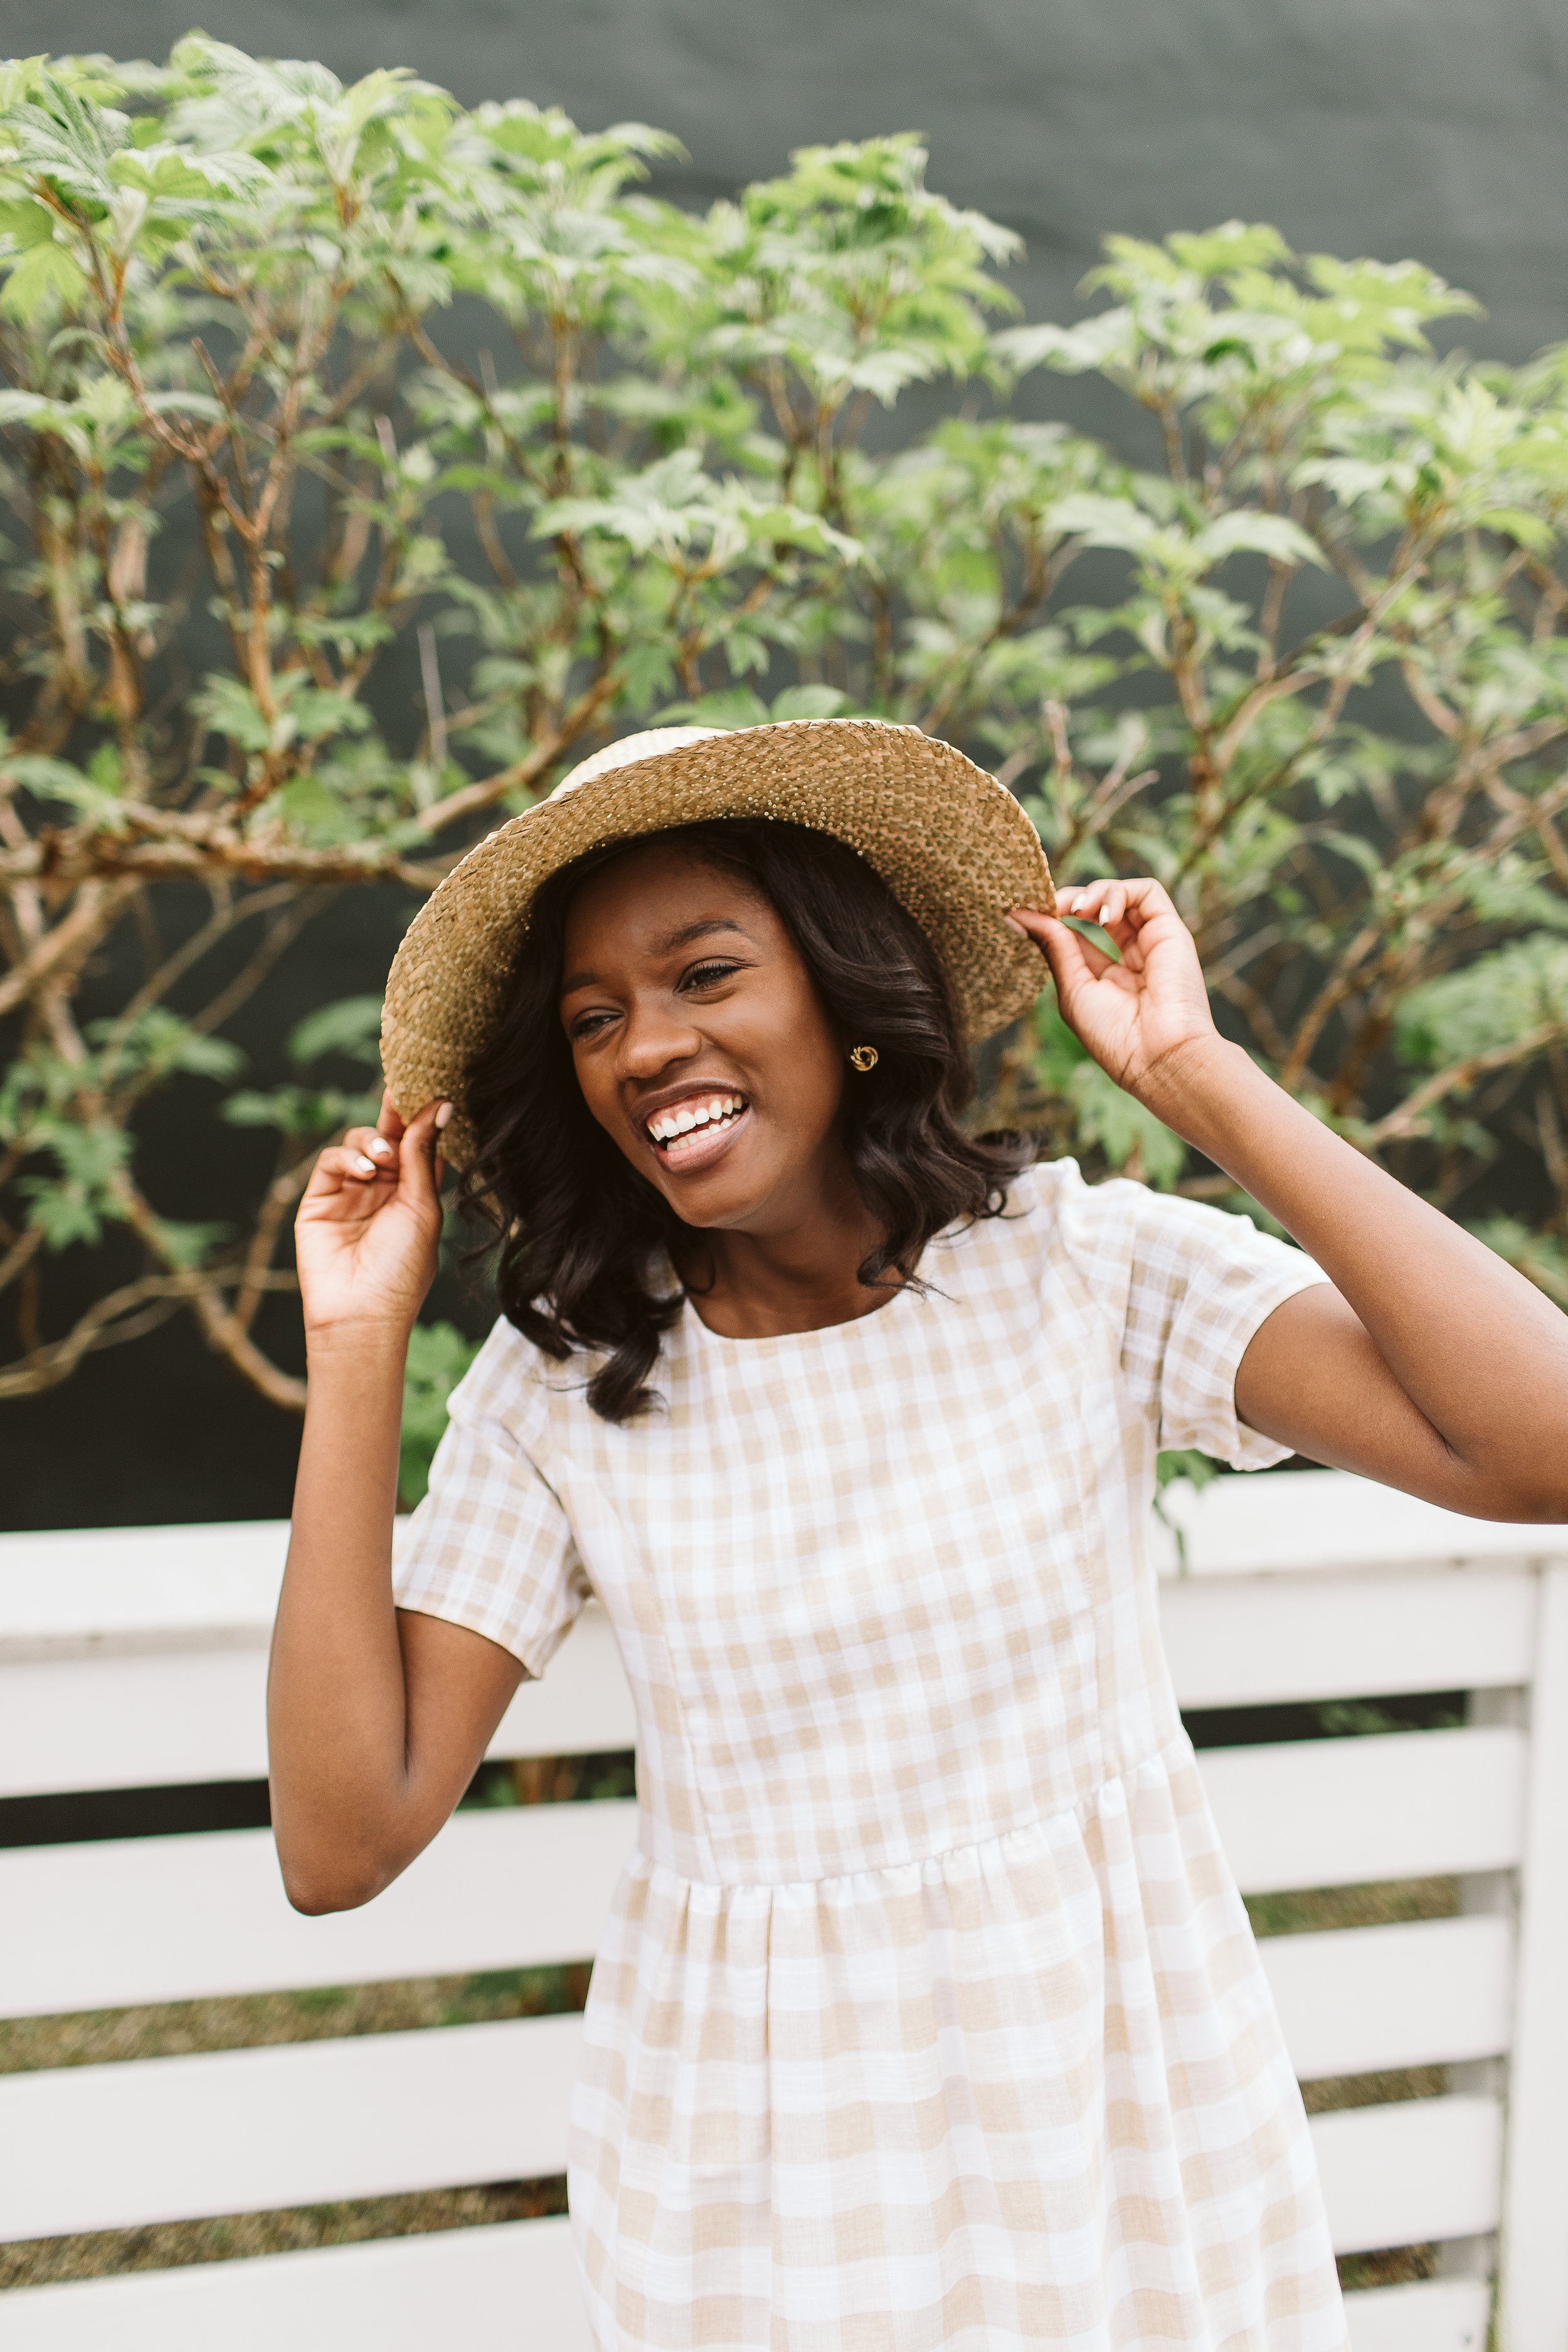 GINGHAM - Soft, sweet, and easy to dress up or down. For a laid back farmers' market day, add a straw hat and strappy sandals. For a night out? Add bold accessories like a statement lip and daring piece of jewelry.Left: Gingham Dress, Simple Extravagance, $48.